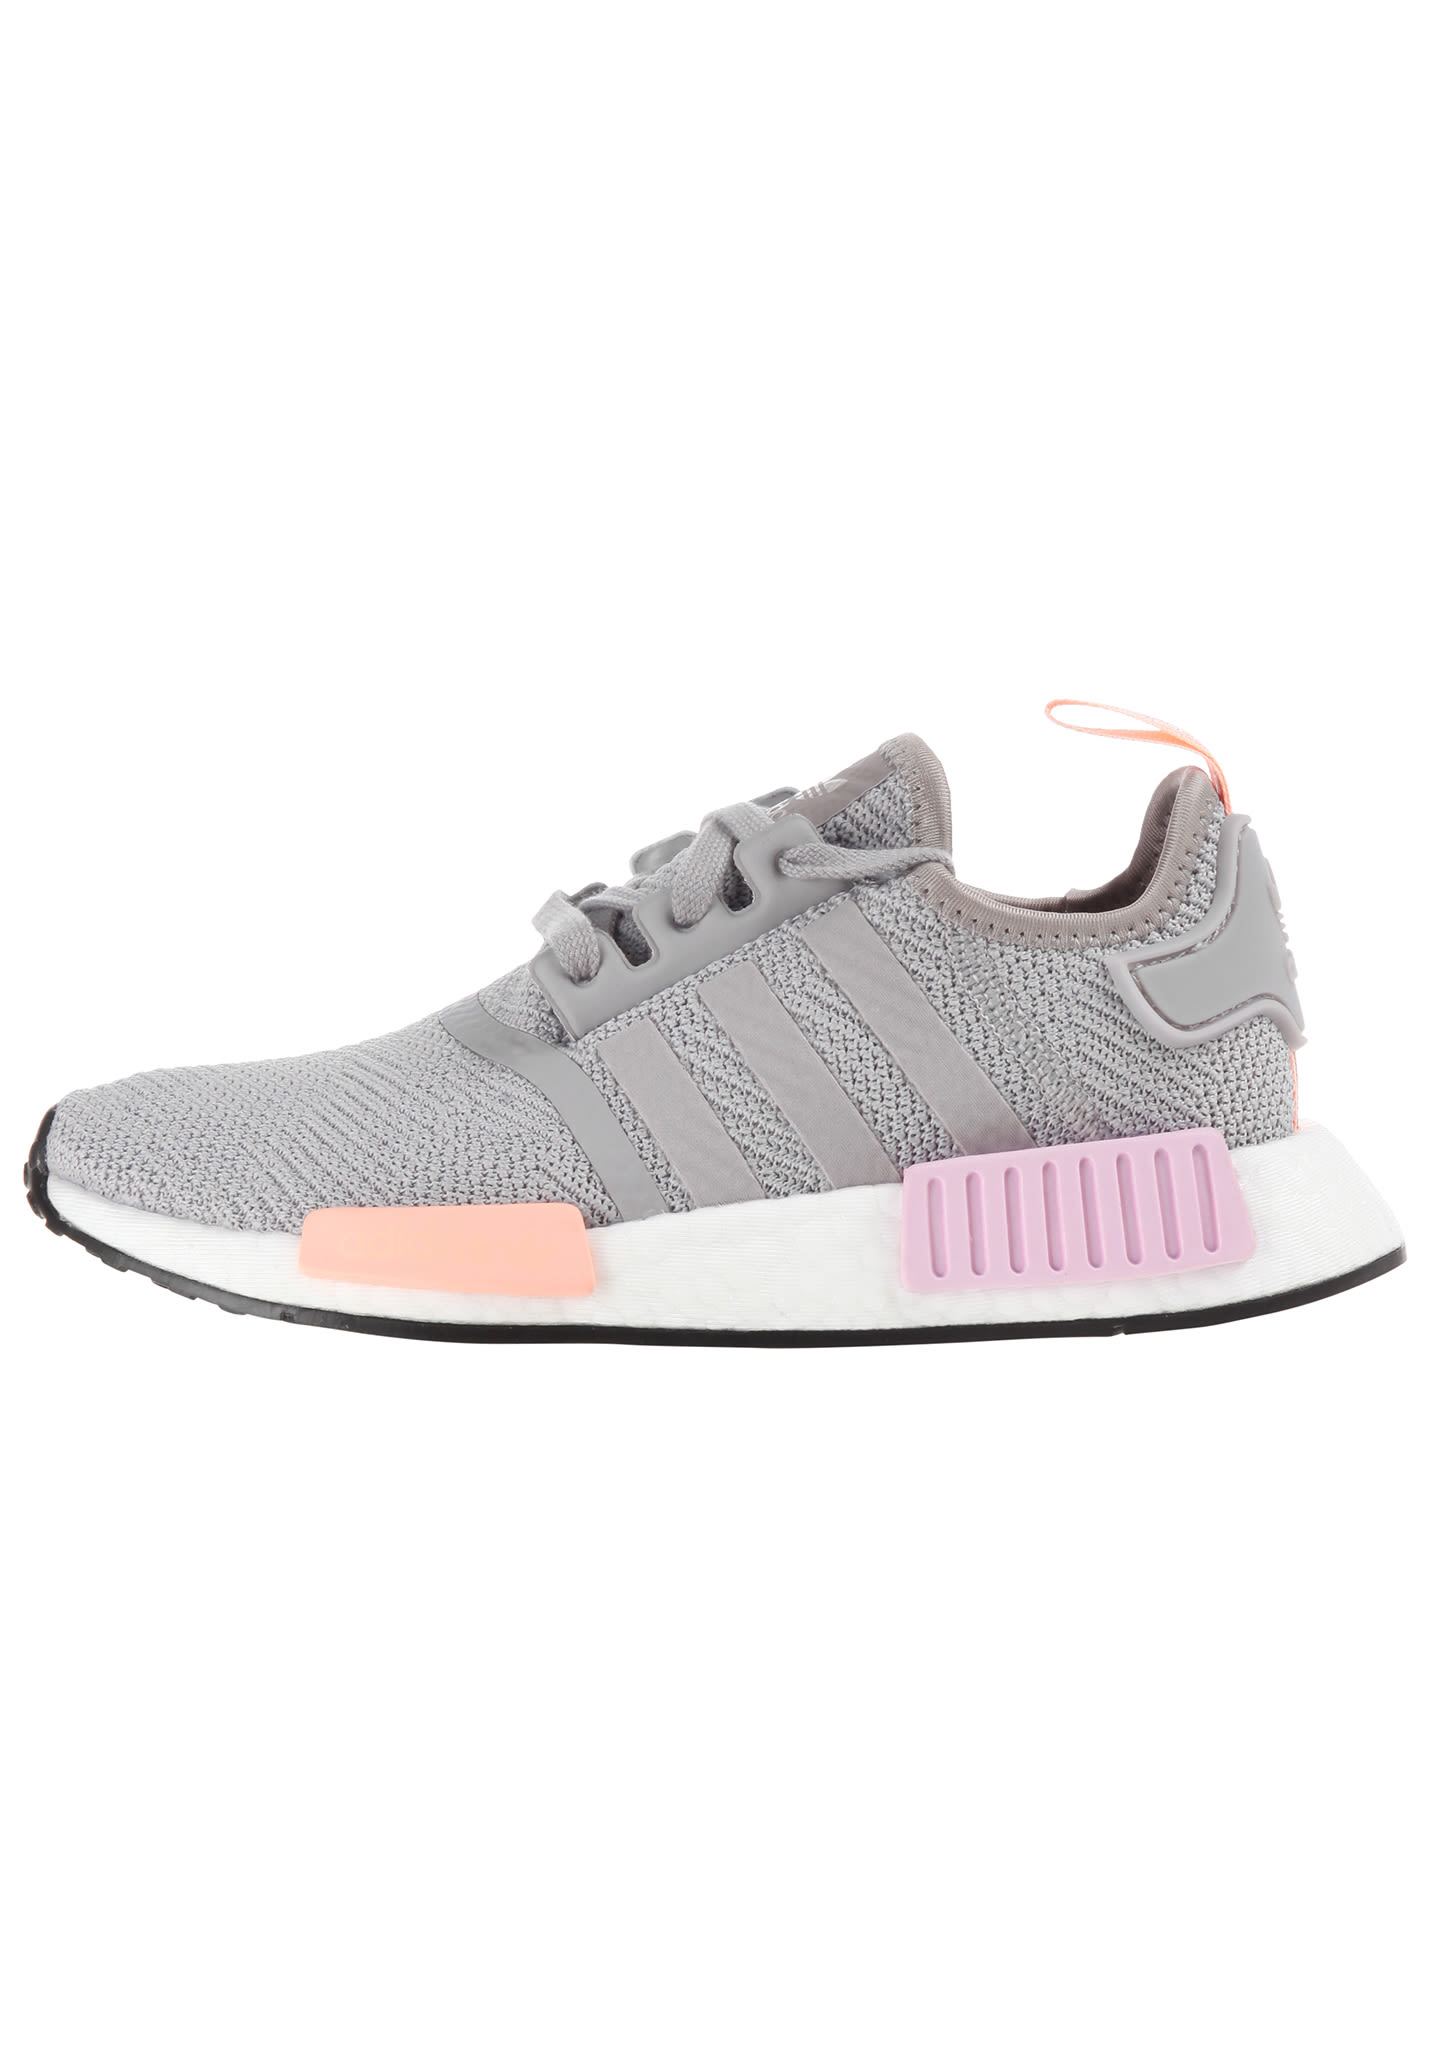 669005dd028eb ADIDAS ORIGINALS NMD R1 - Sneakers for Women - Grey - Planet Sports